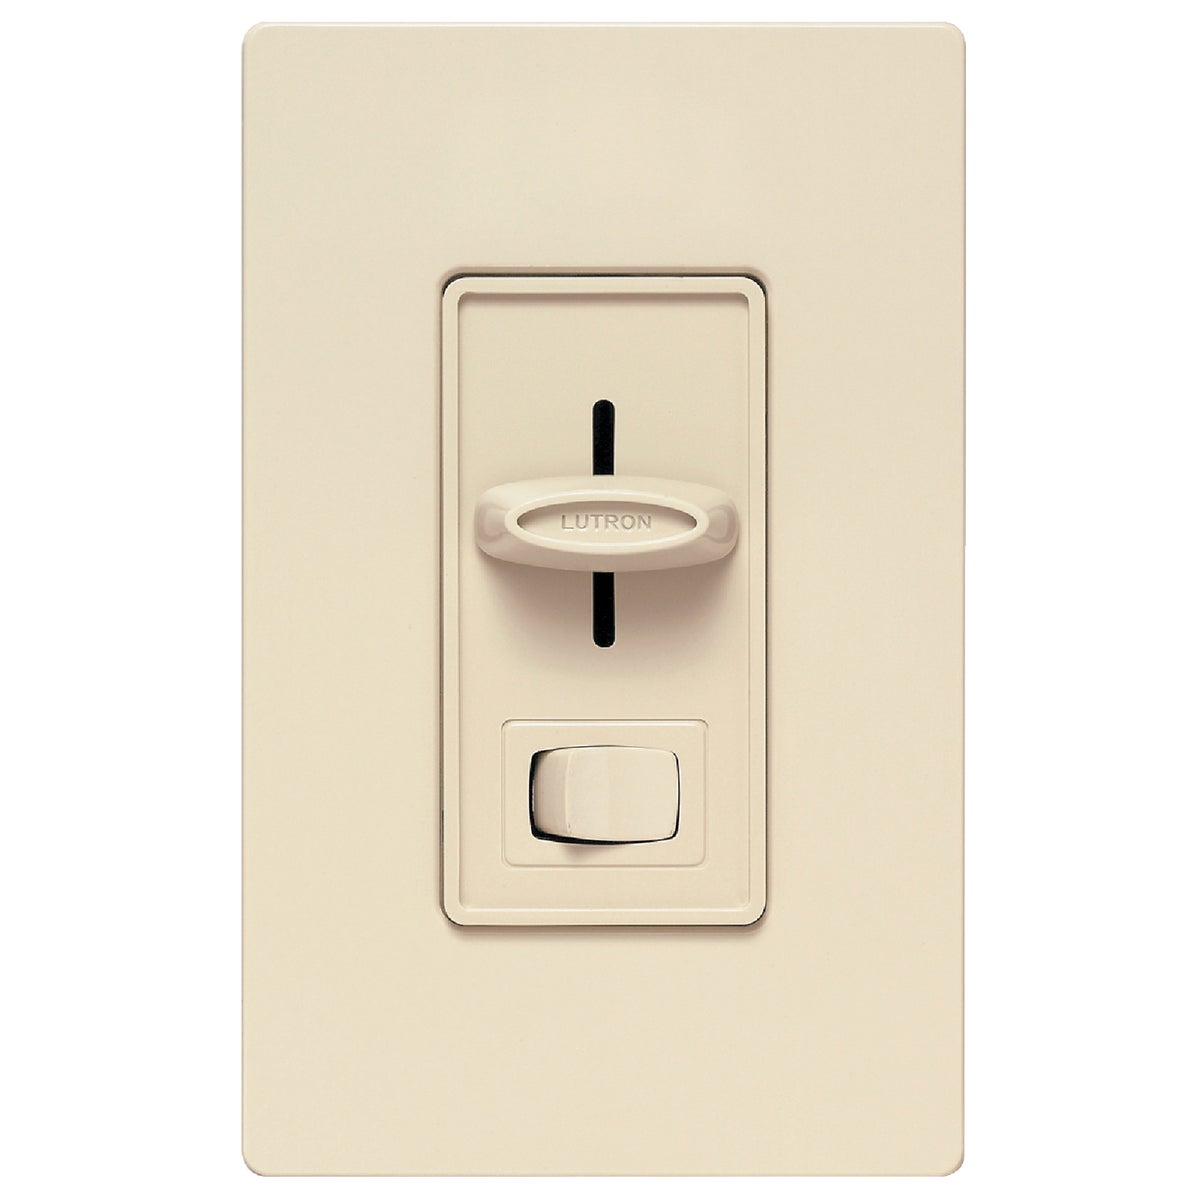 IV SLIDE DIMMER - S-600PH-IV by Lutron Elect Co Inc